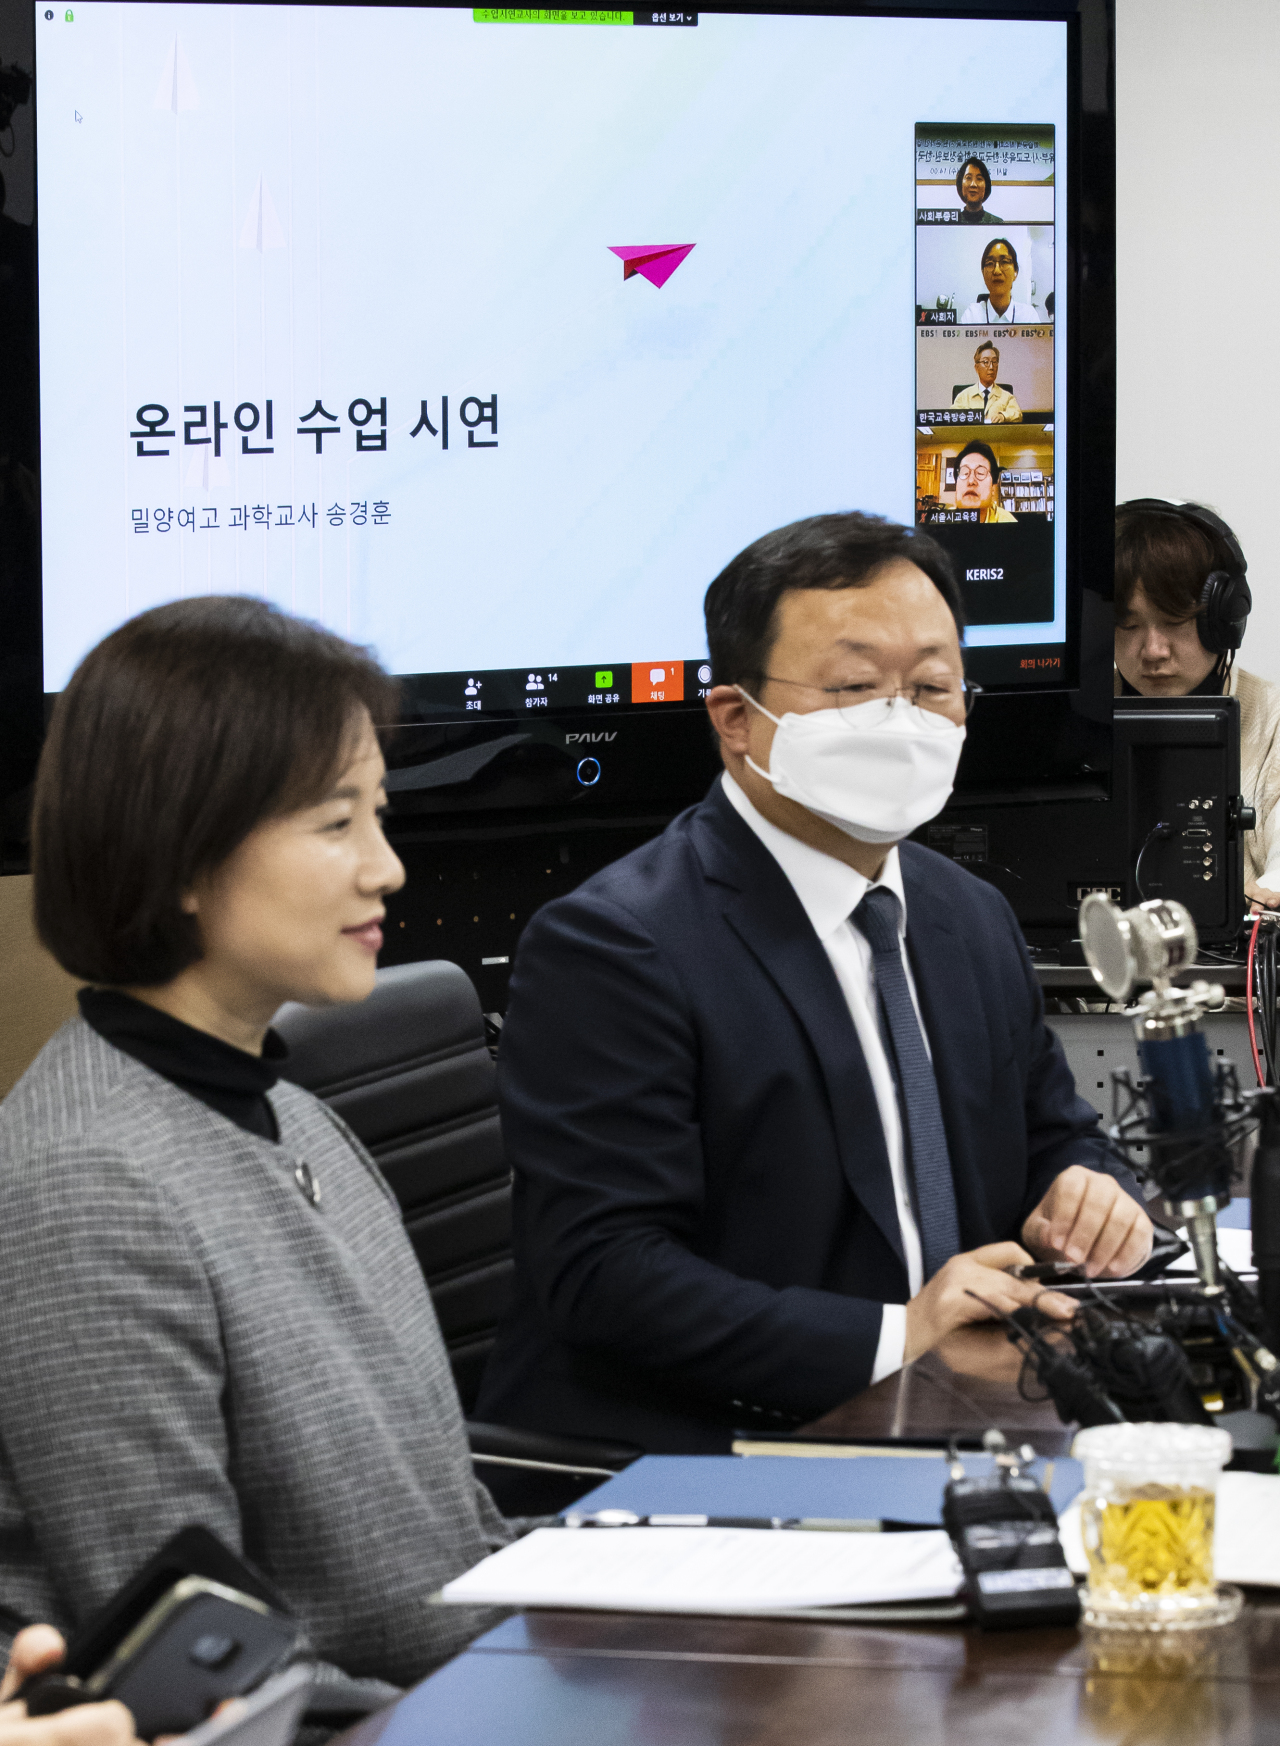 Minister of Education Yoo Eun-hae (left) attends an online class demonstration conducted at a ministry building in Seoul on Wednesday. (Yonhap)